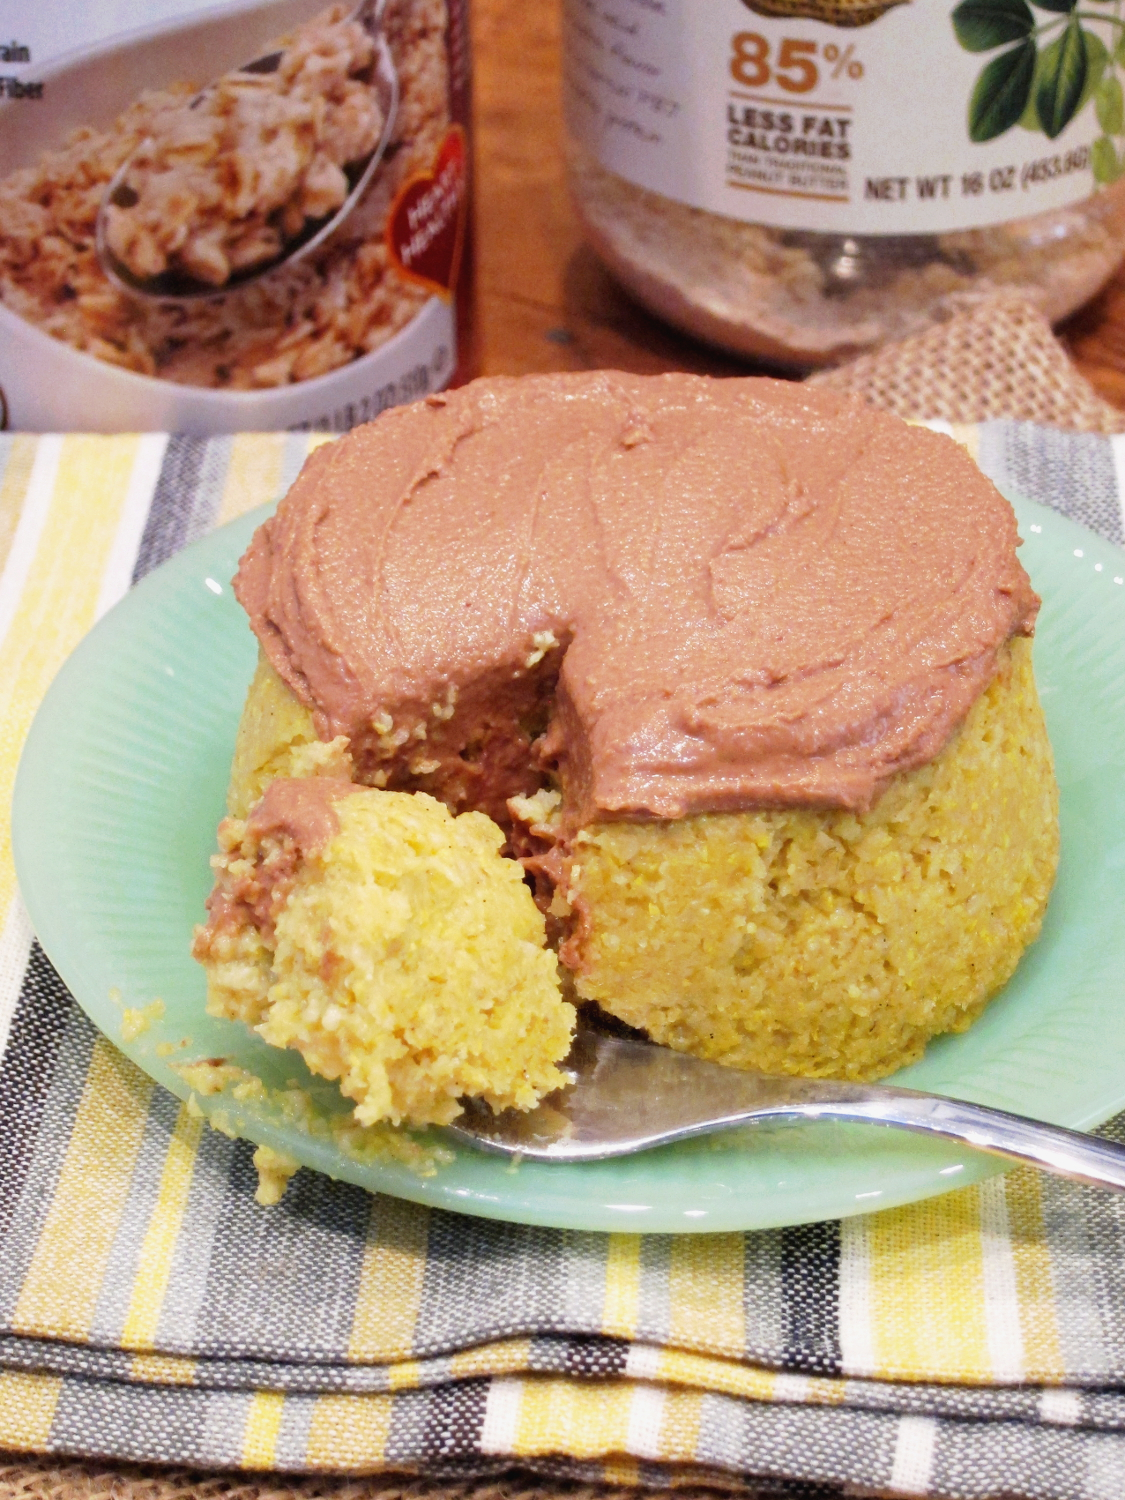 Yellow Cake Baked Oatmeal with Chocolate PB2 Frosting | The ...